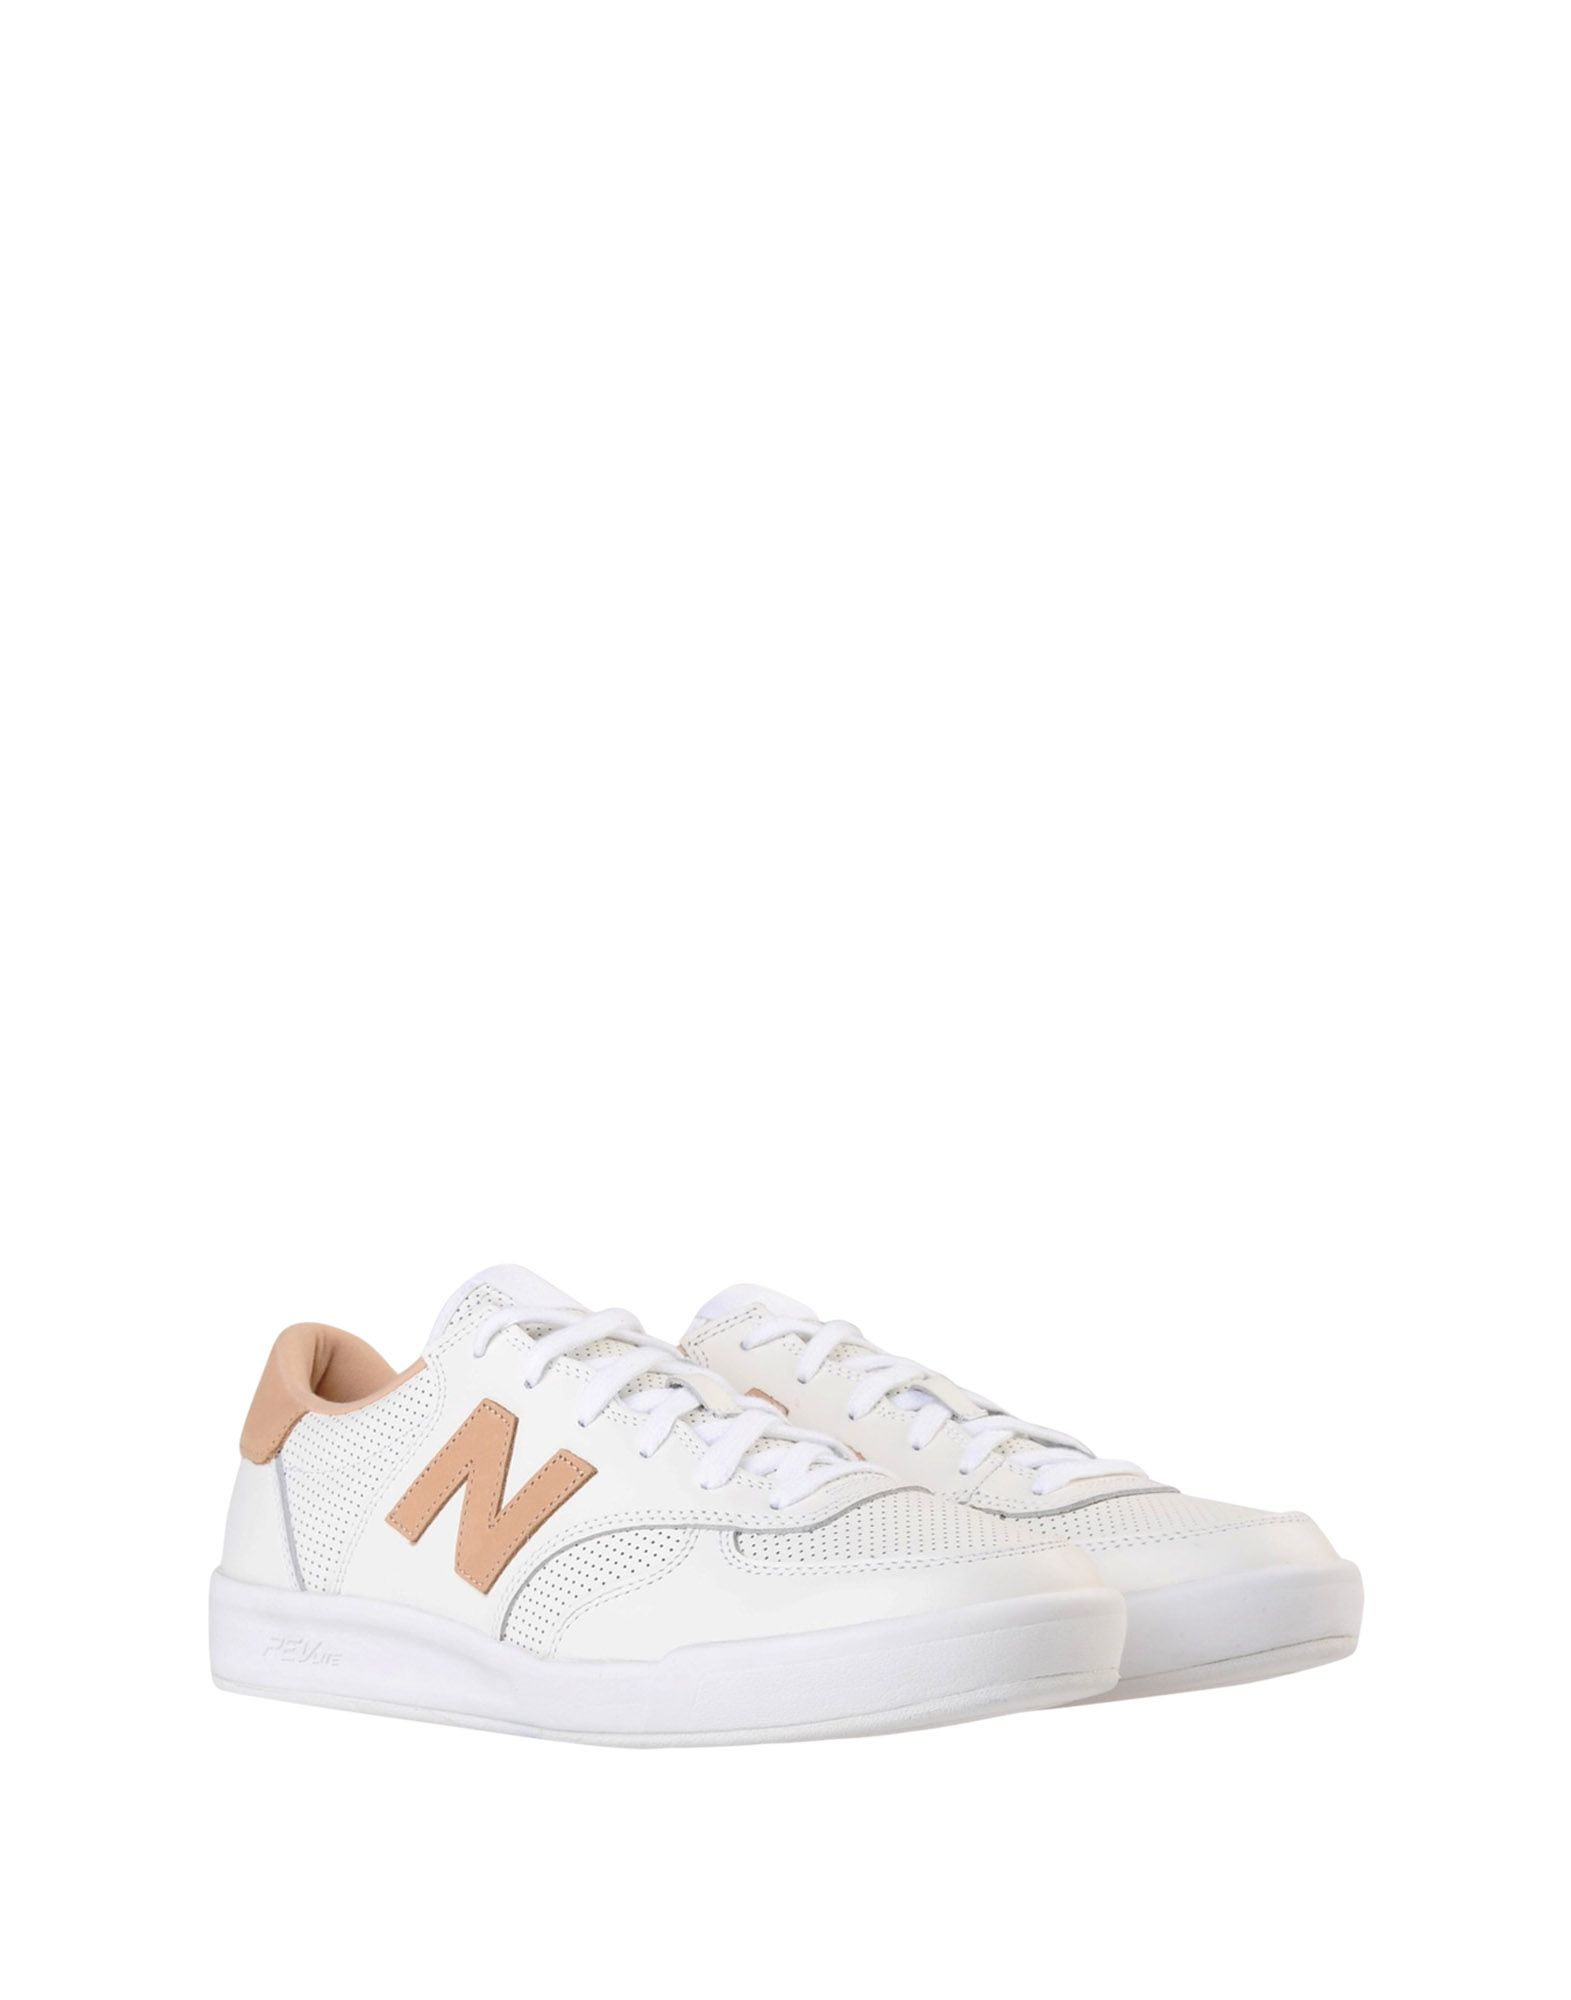 ... Sneakers New Balance 300 Tier 2 Leather - Femme - Sneakers New Balance  sur